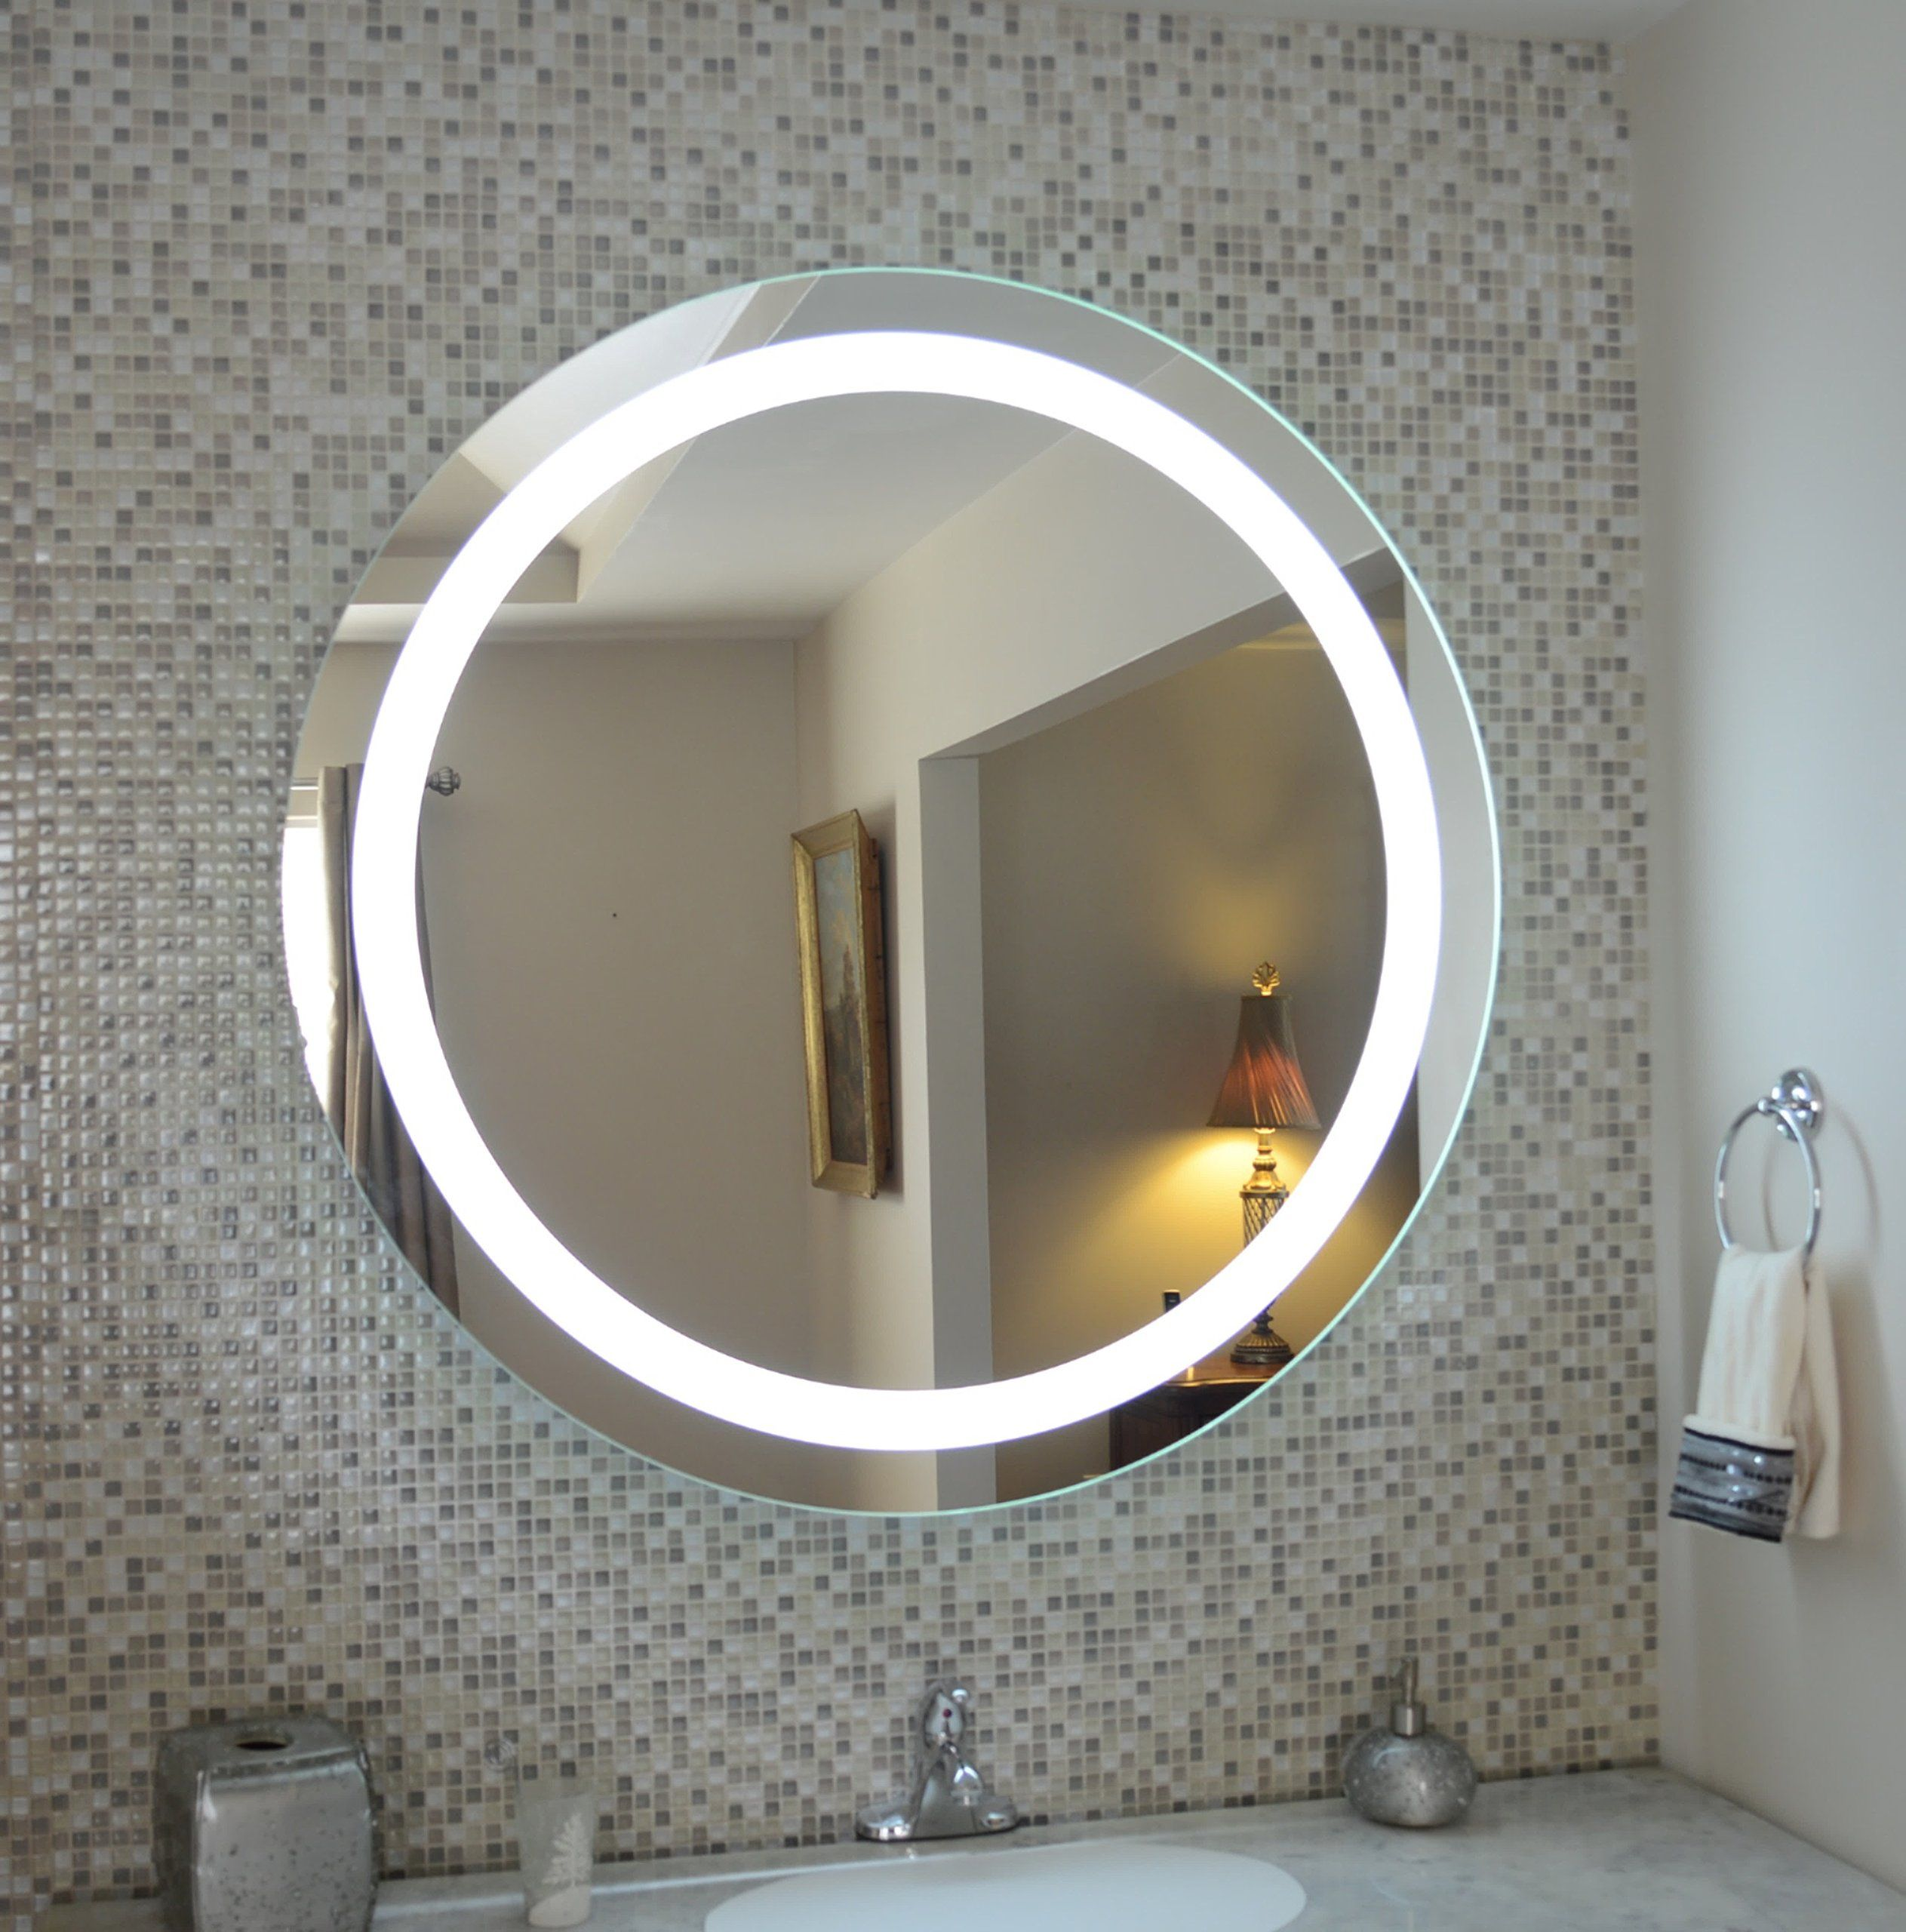 Wall Mounted Lighted Vanity Mirror Led Mam1d40 Commercial Grade 40 Round